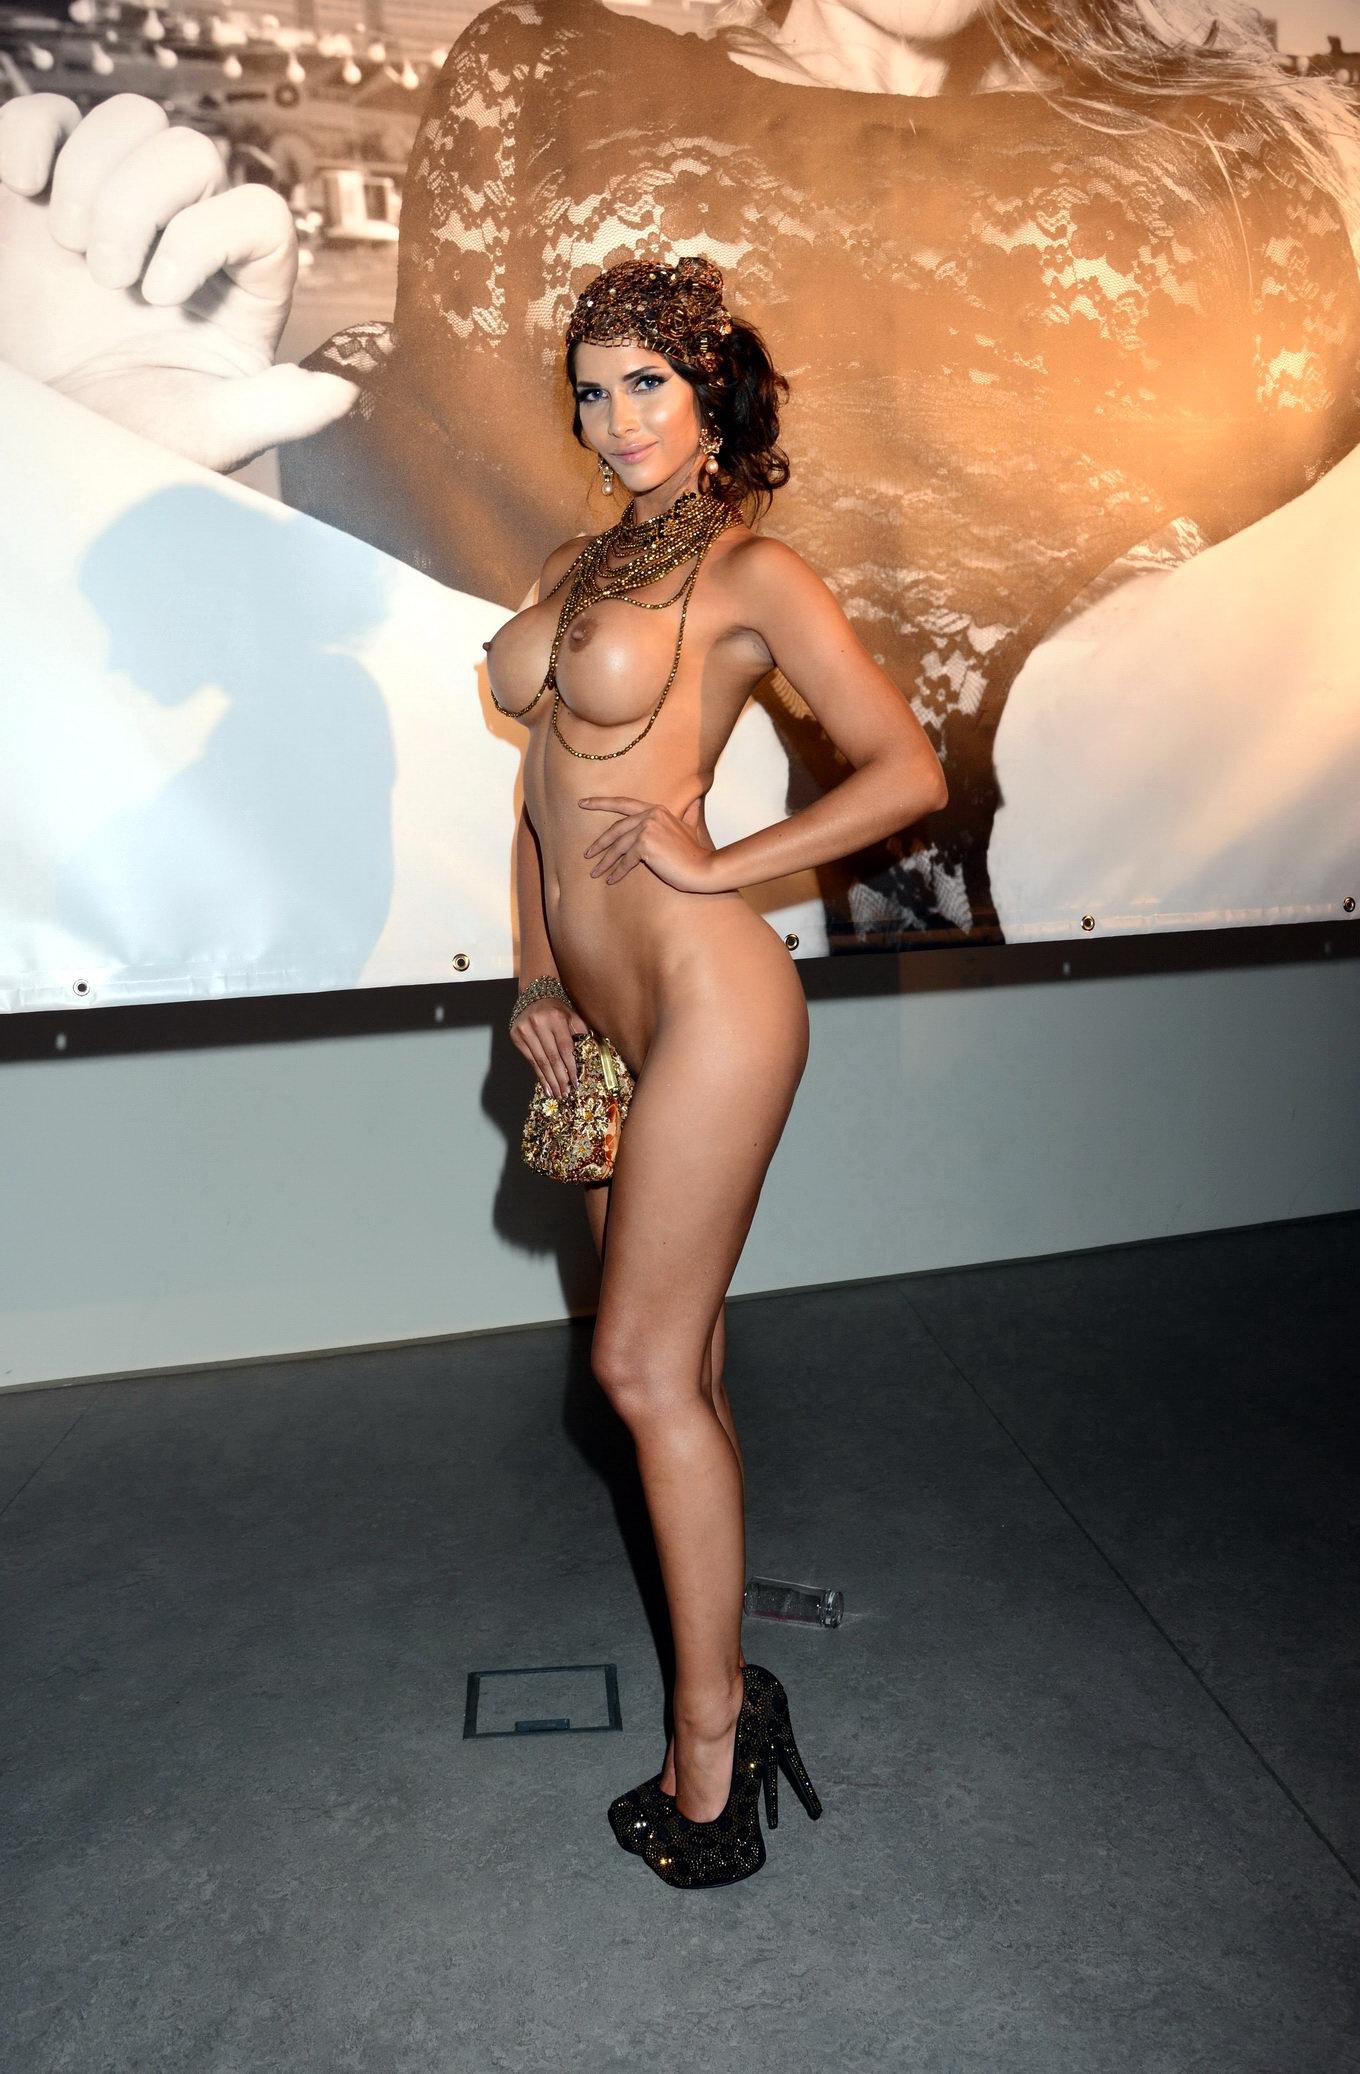 Micaela Schafer Fully Nude But Hiding Her Pussy At The Photo Exhibition -1286